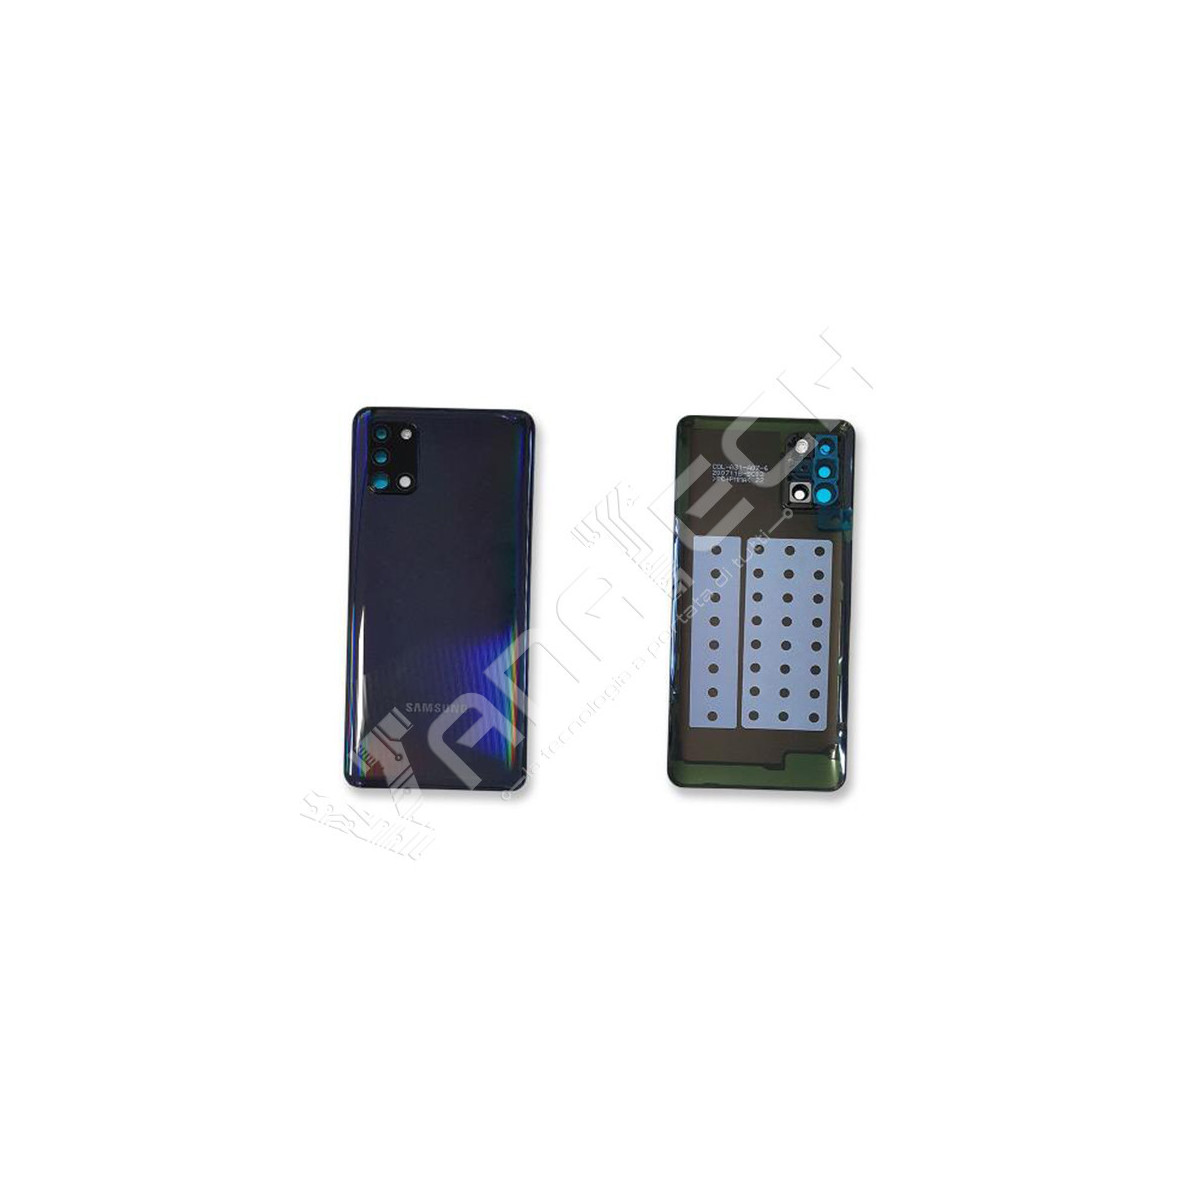 PC DESKTOP COMPLETO CPU INTEL I3-7100 8GB RAM 2400MHz SSD 120GB E HARD DISK 1TB